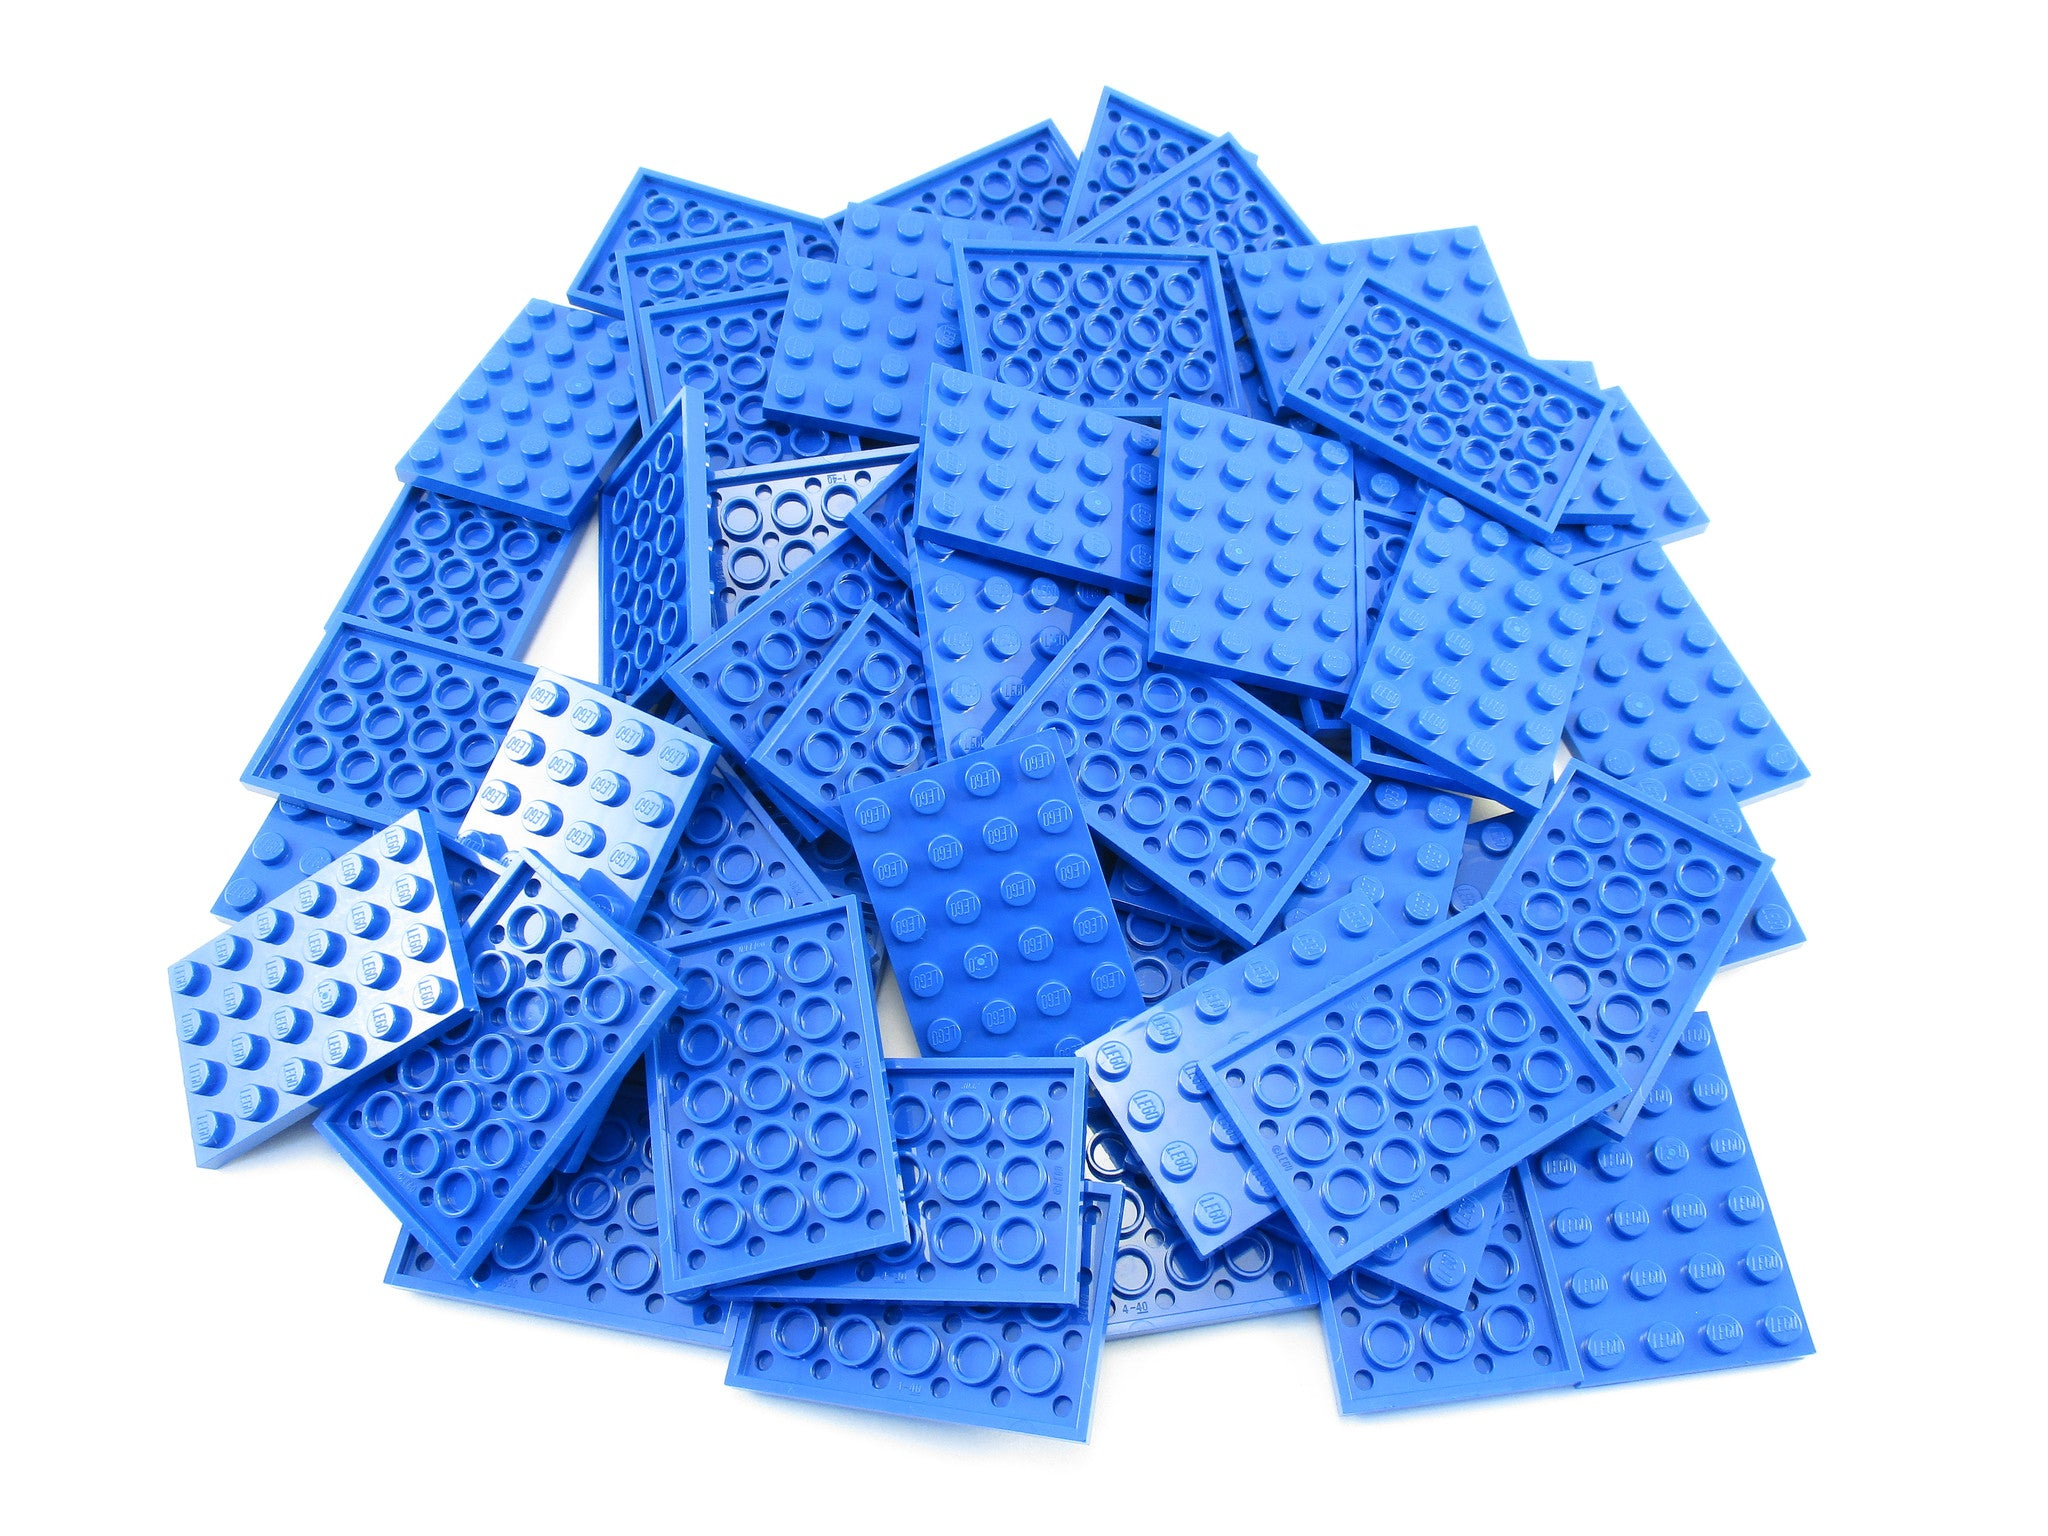 LEGO Blue Plate 4x6 Lot of 50 Parts Pieces 3032